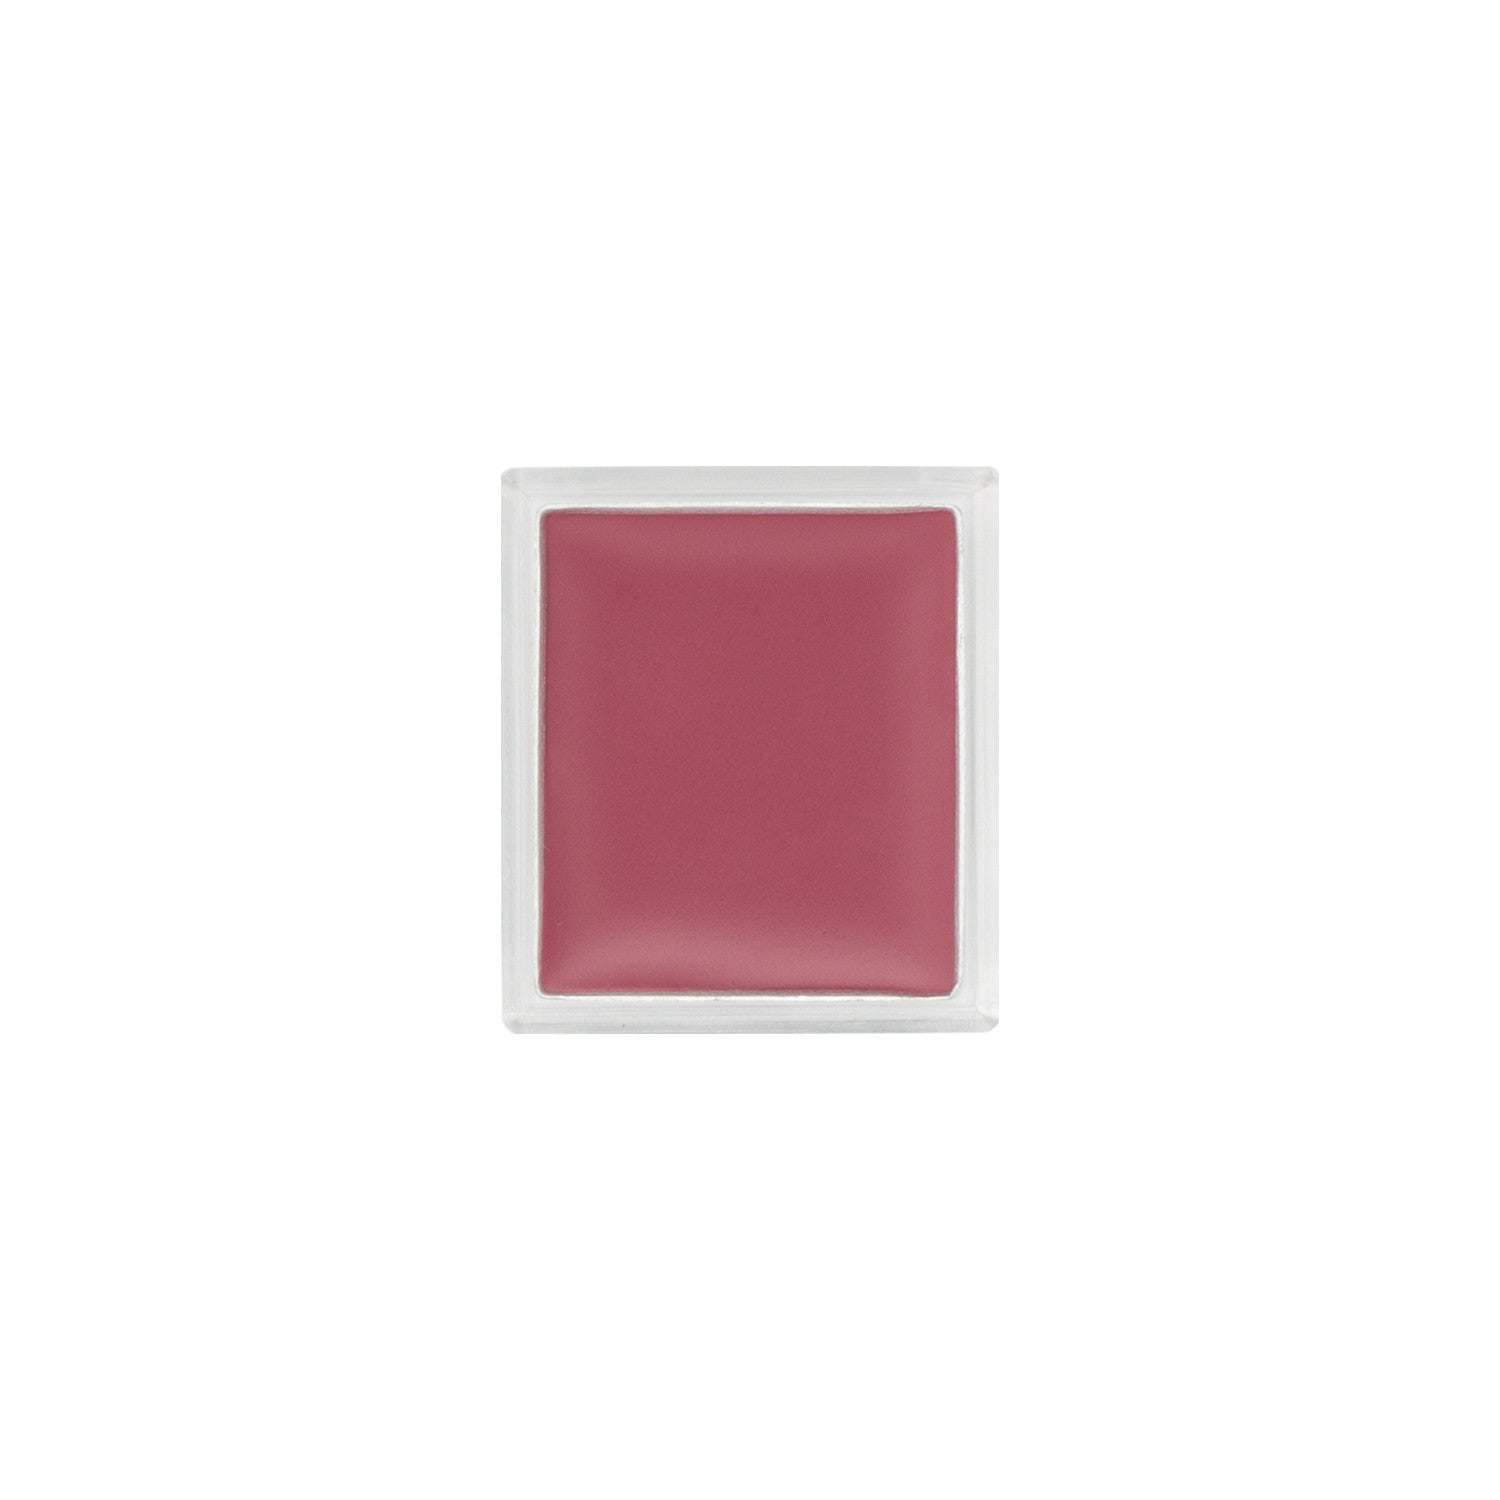 Glam-it! Superfection CC Lip Color – BEAUTIFUL AFFAIR